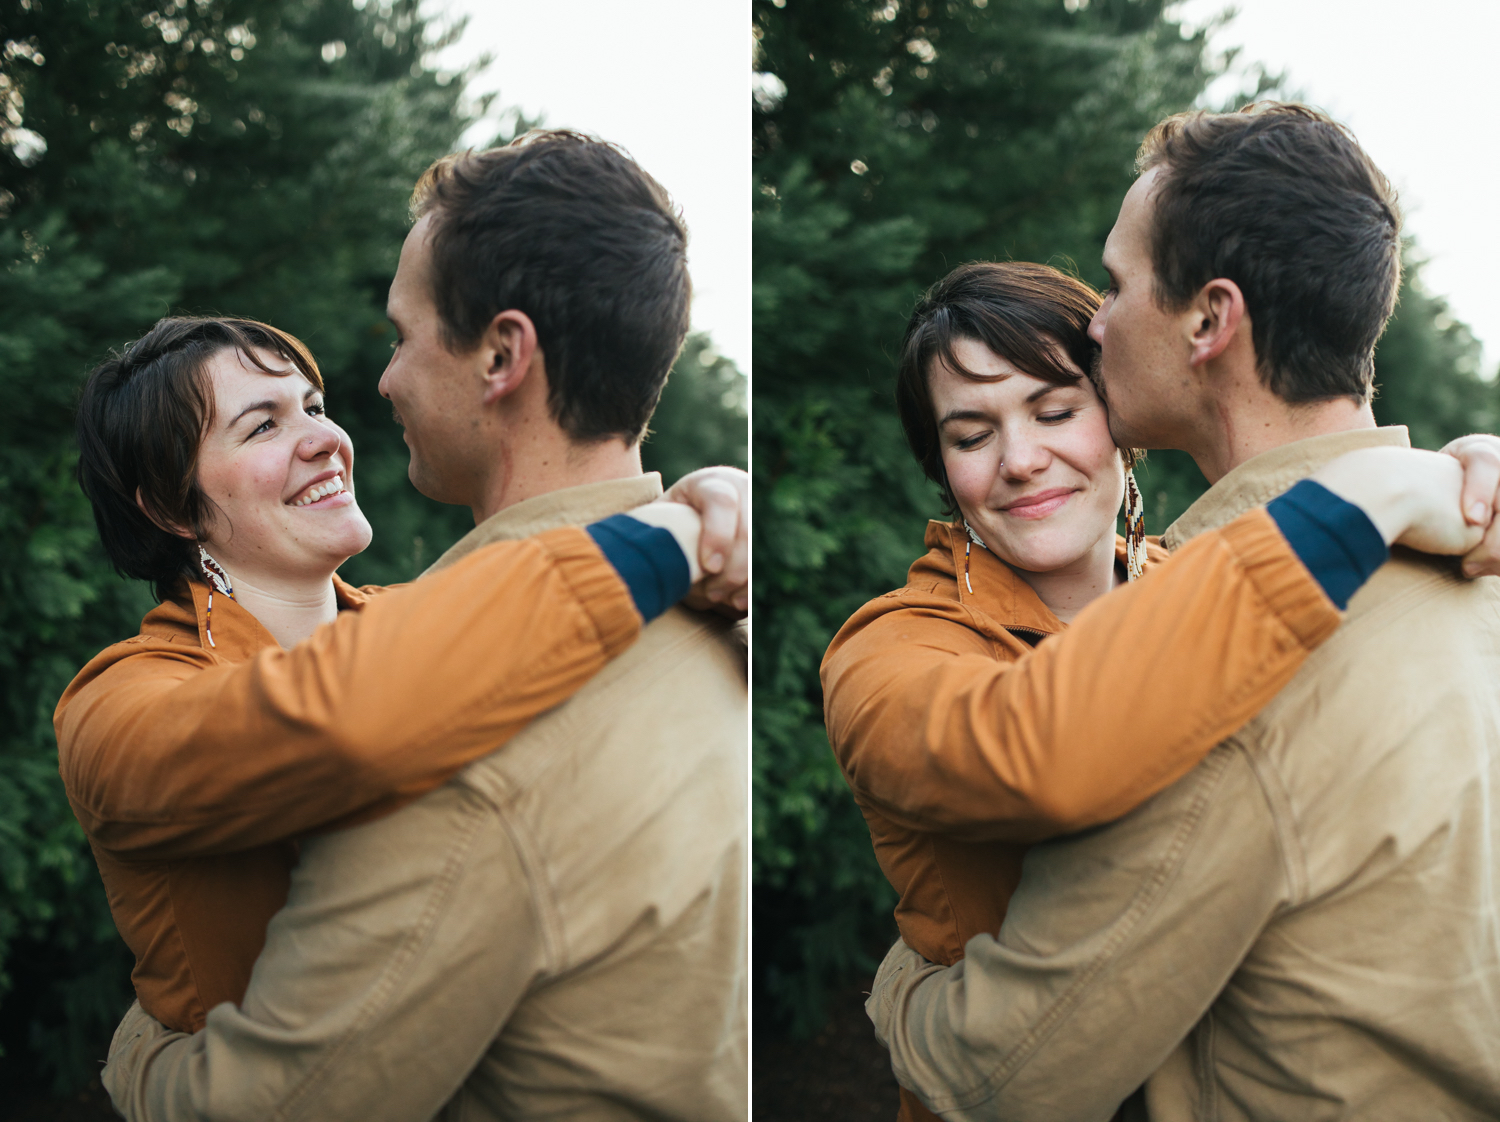 grass-velley-couples-photographer-nevada-city-engagement.jpg